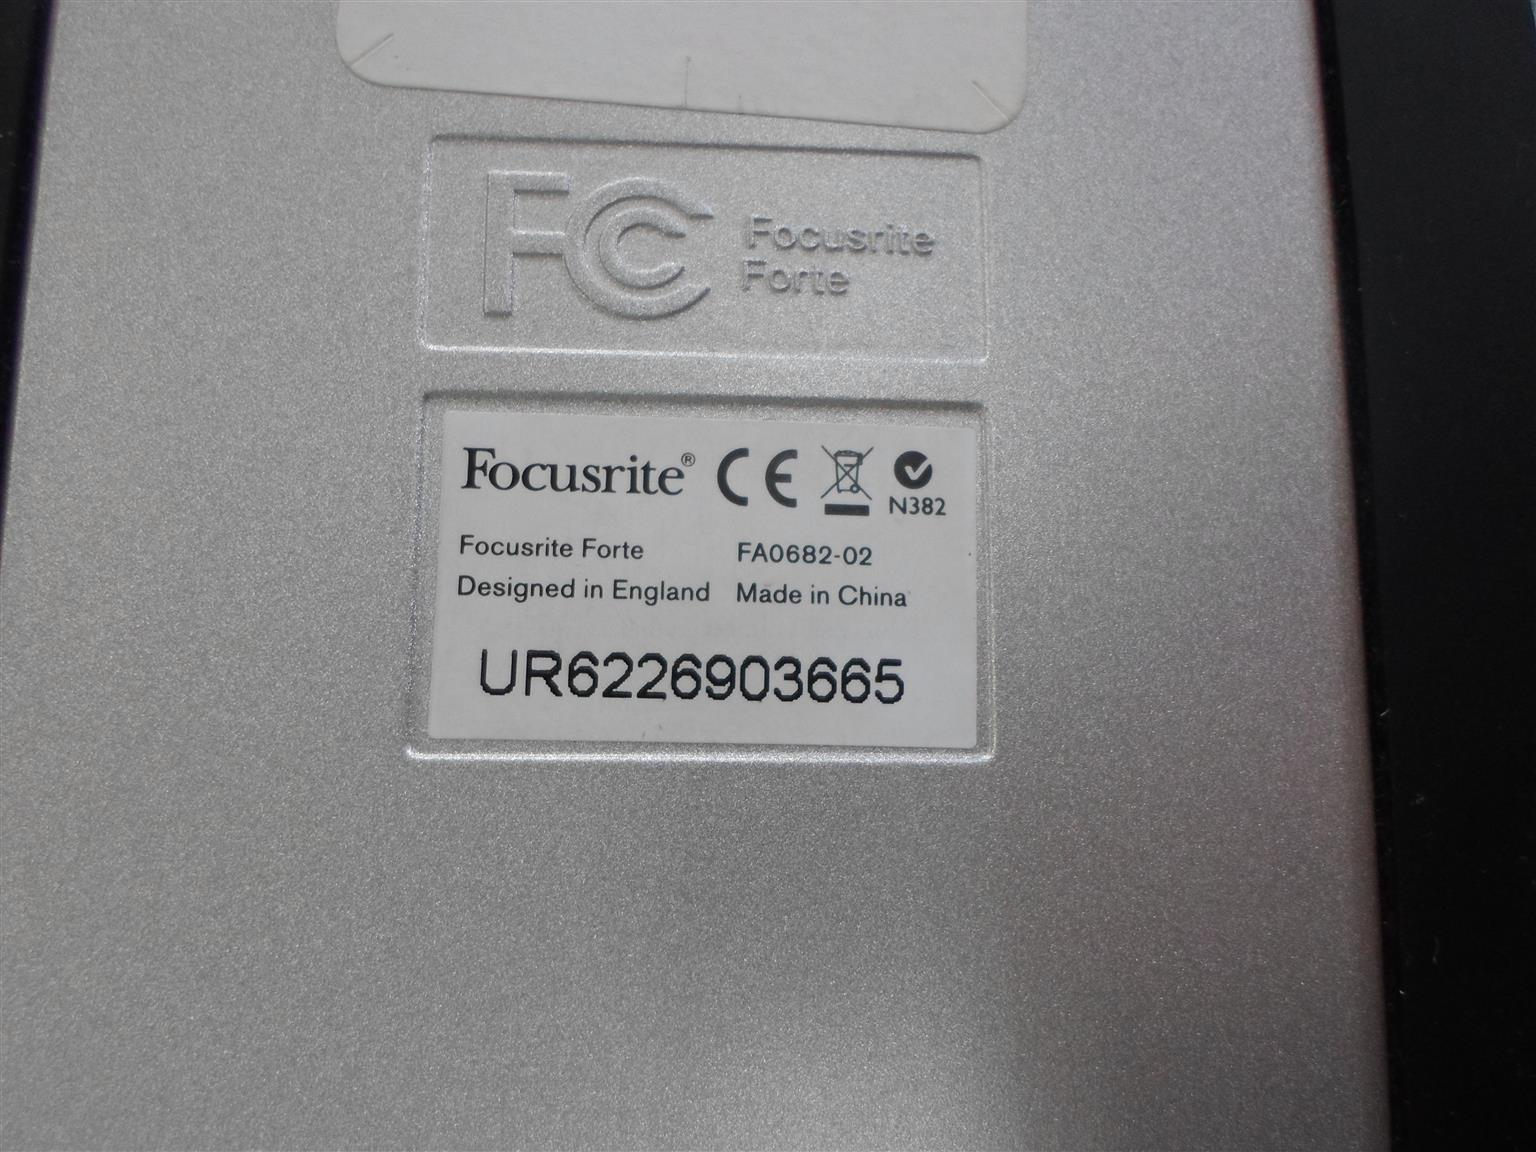 Focusrite Forte USB Audio Recording Interface - C033045429-1